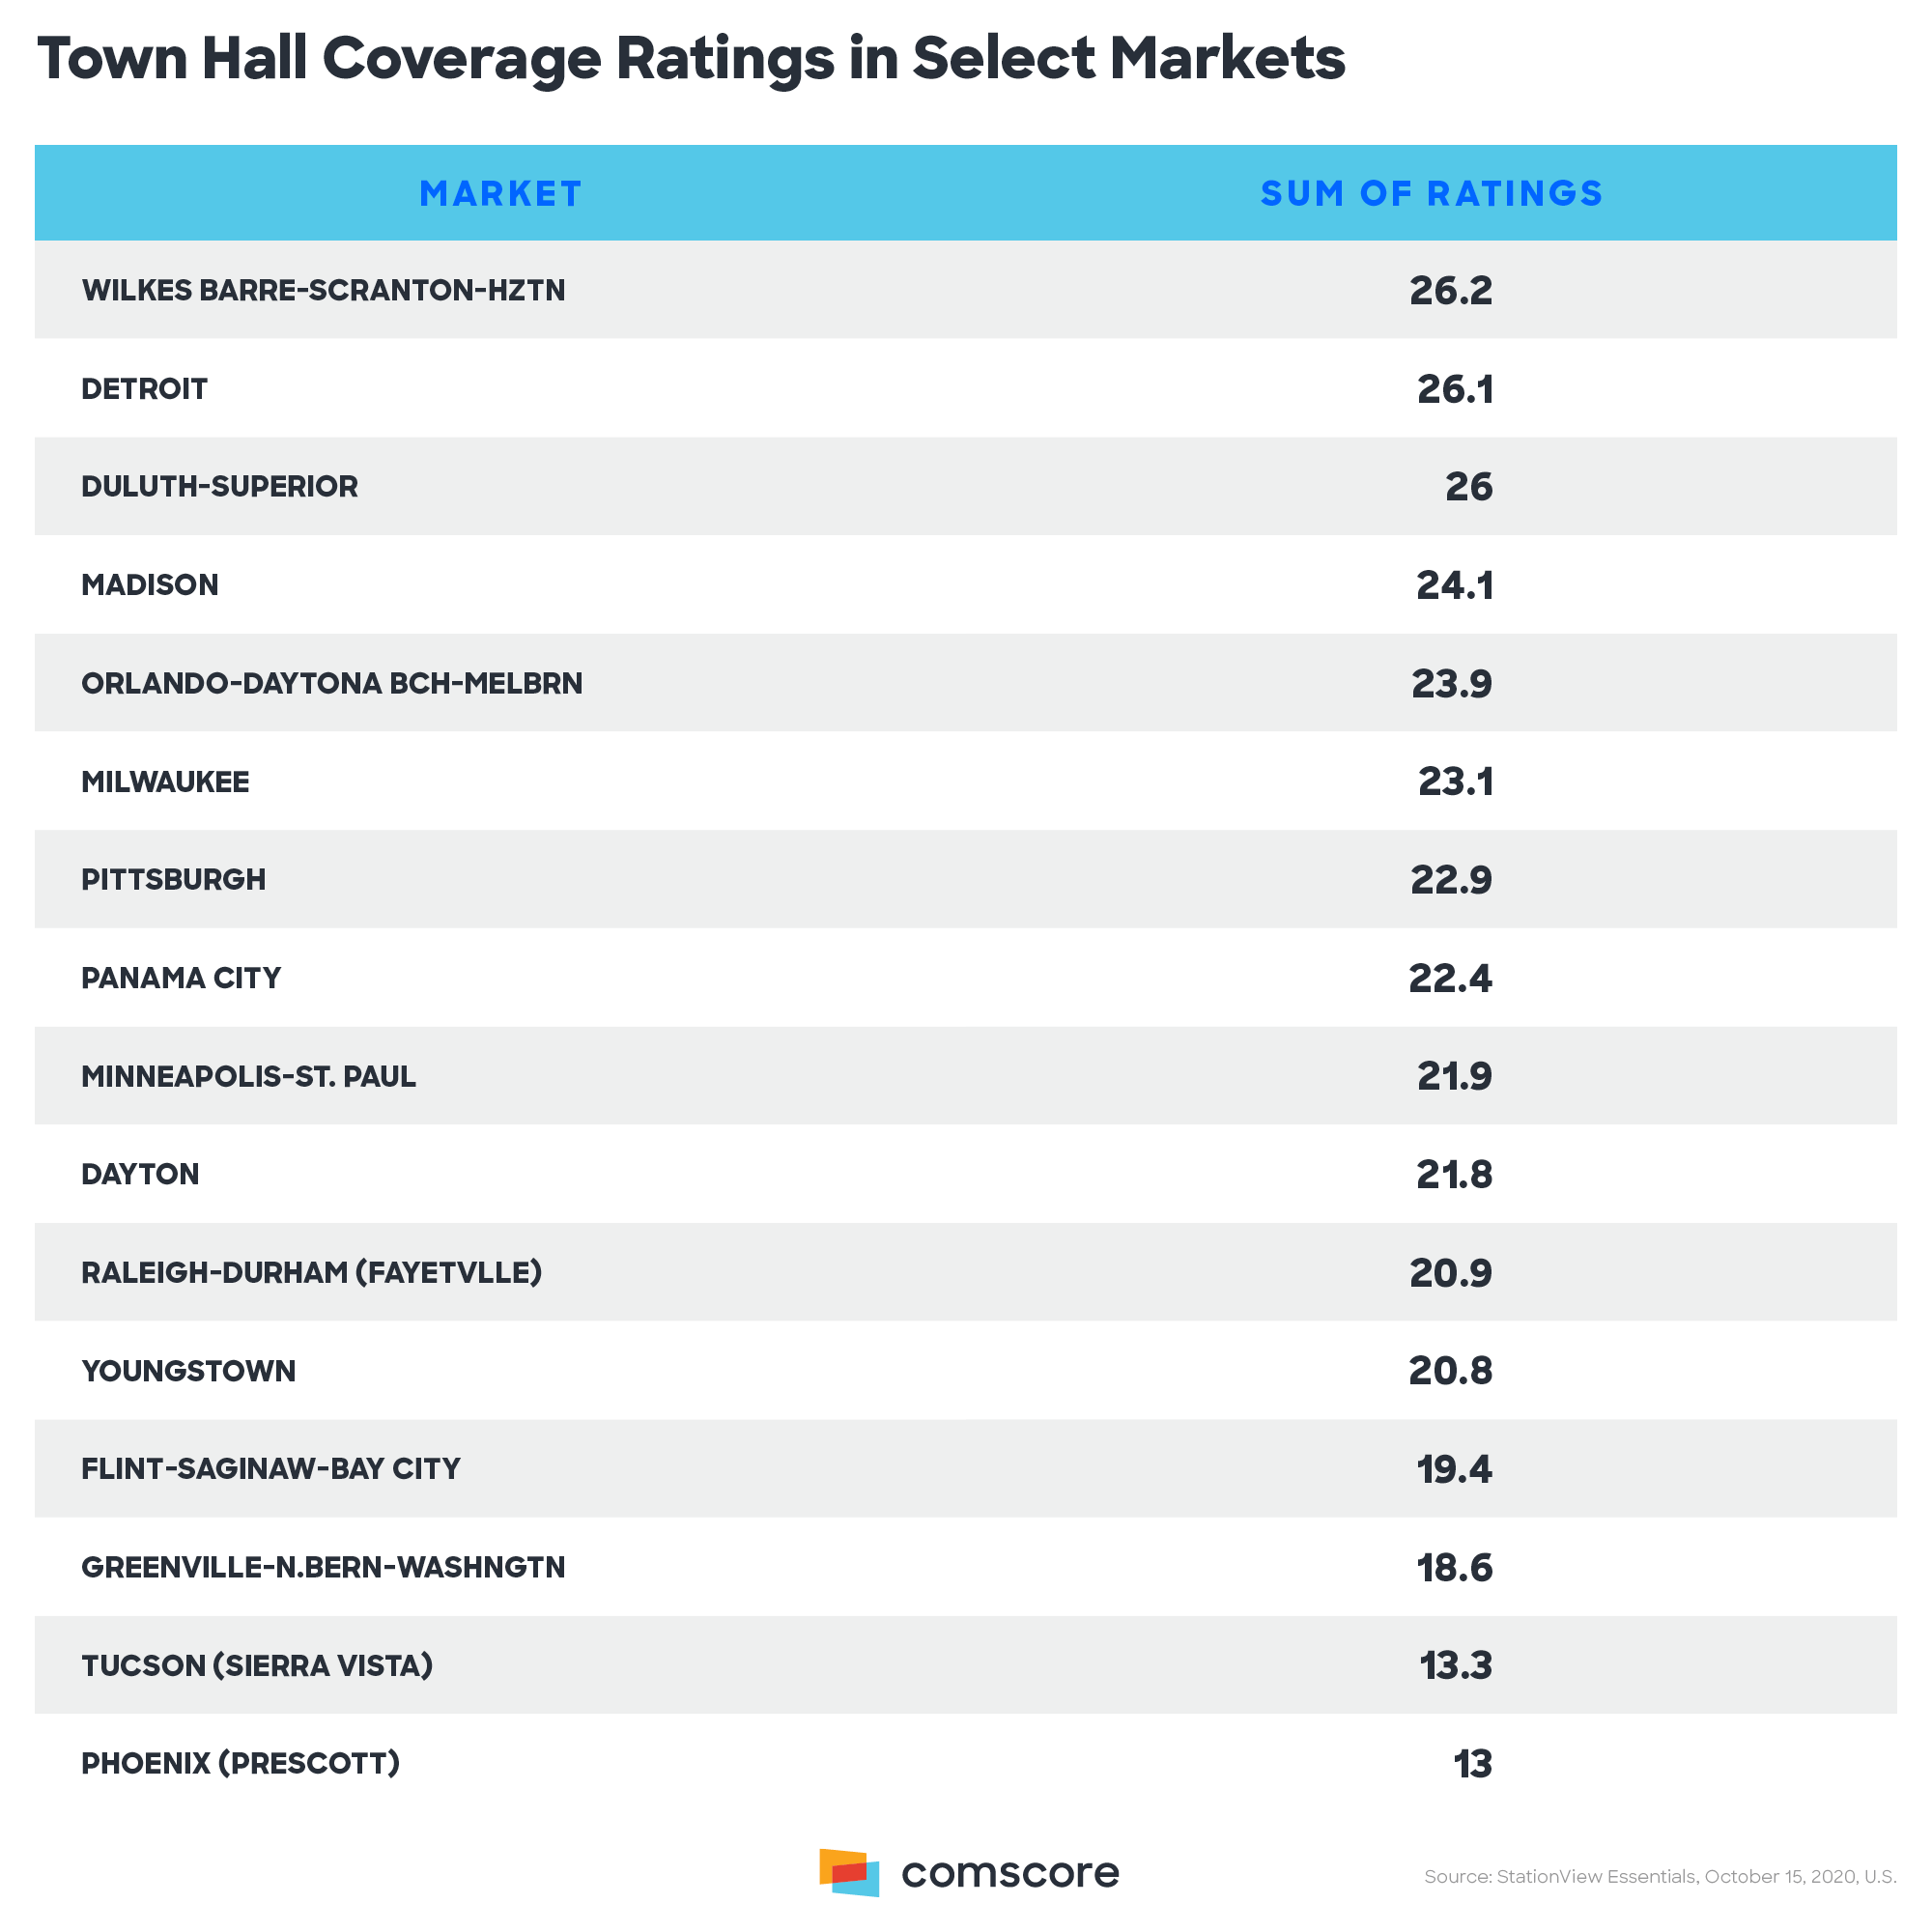 Town Hall Coverage Ratings in Select Markets